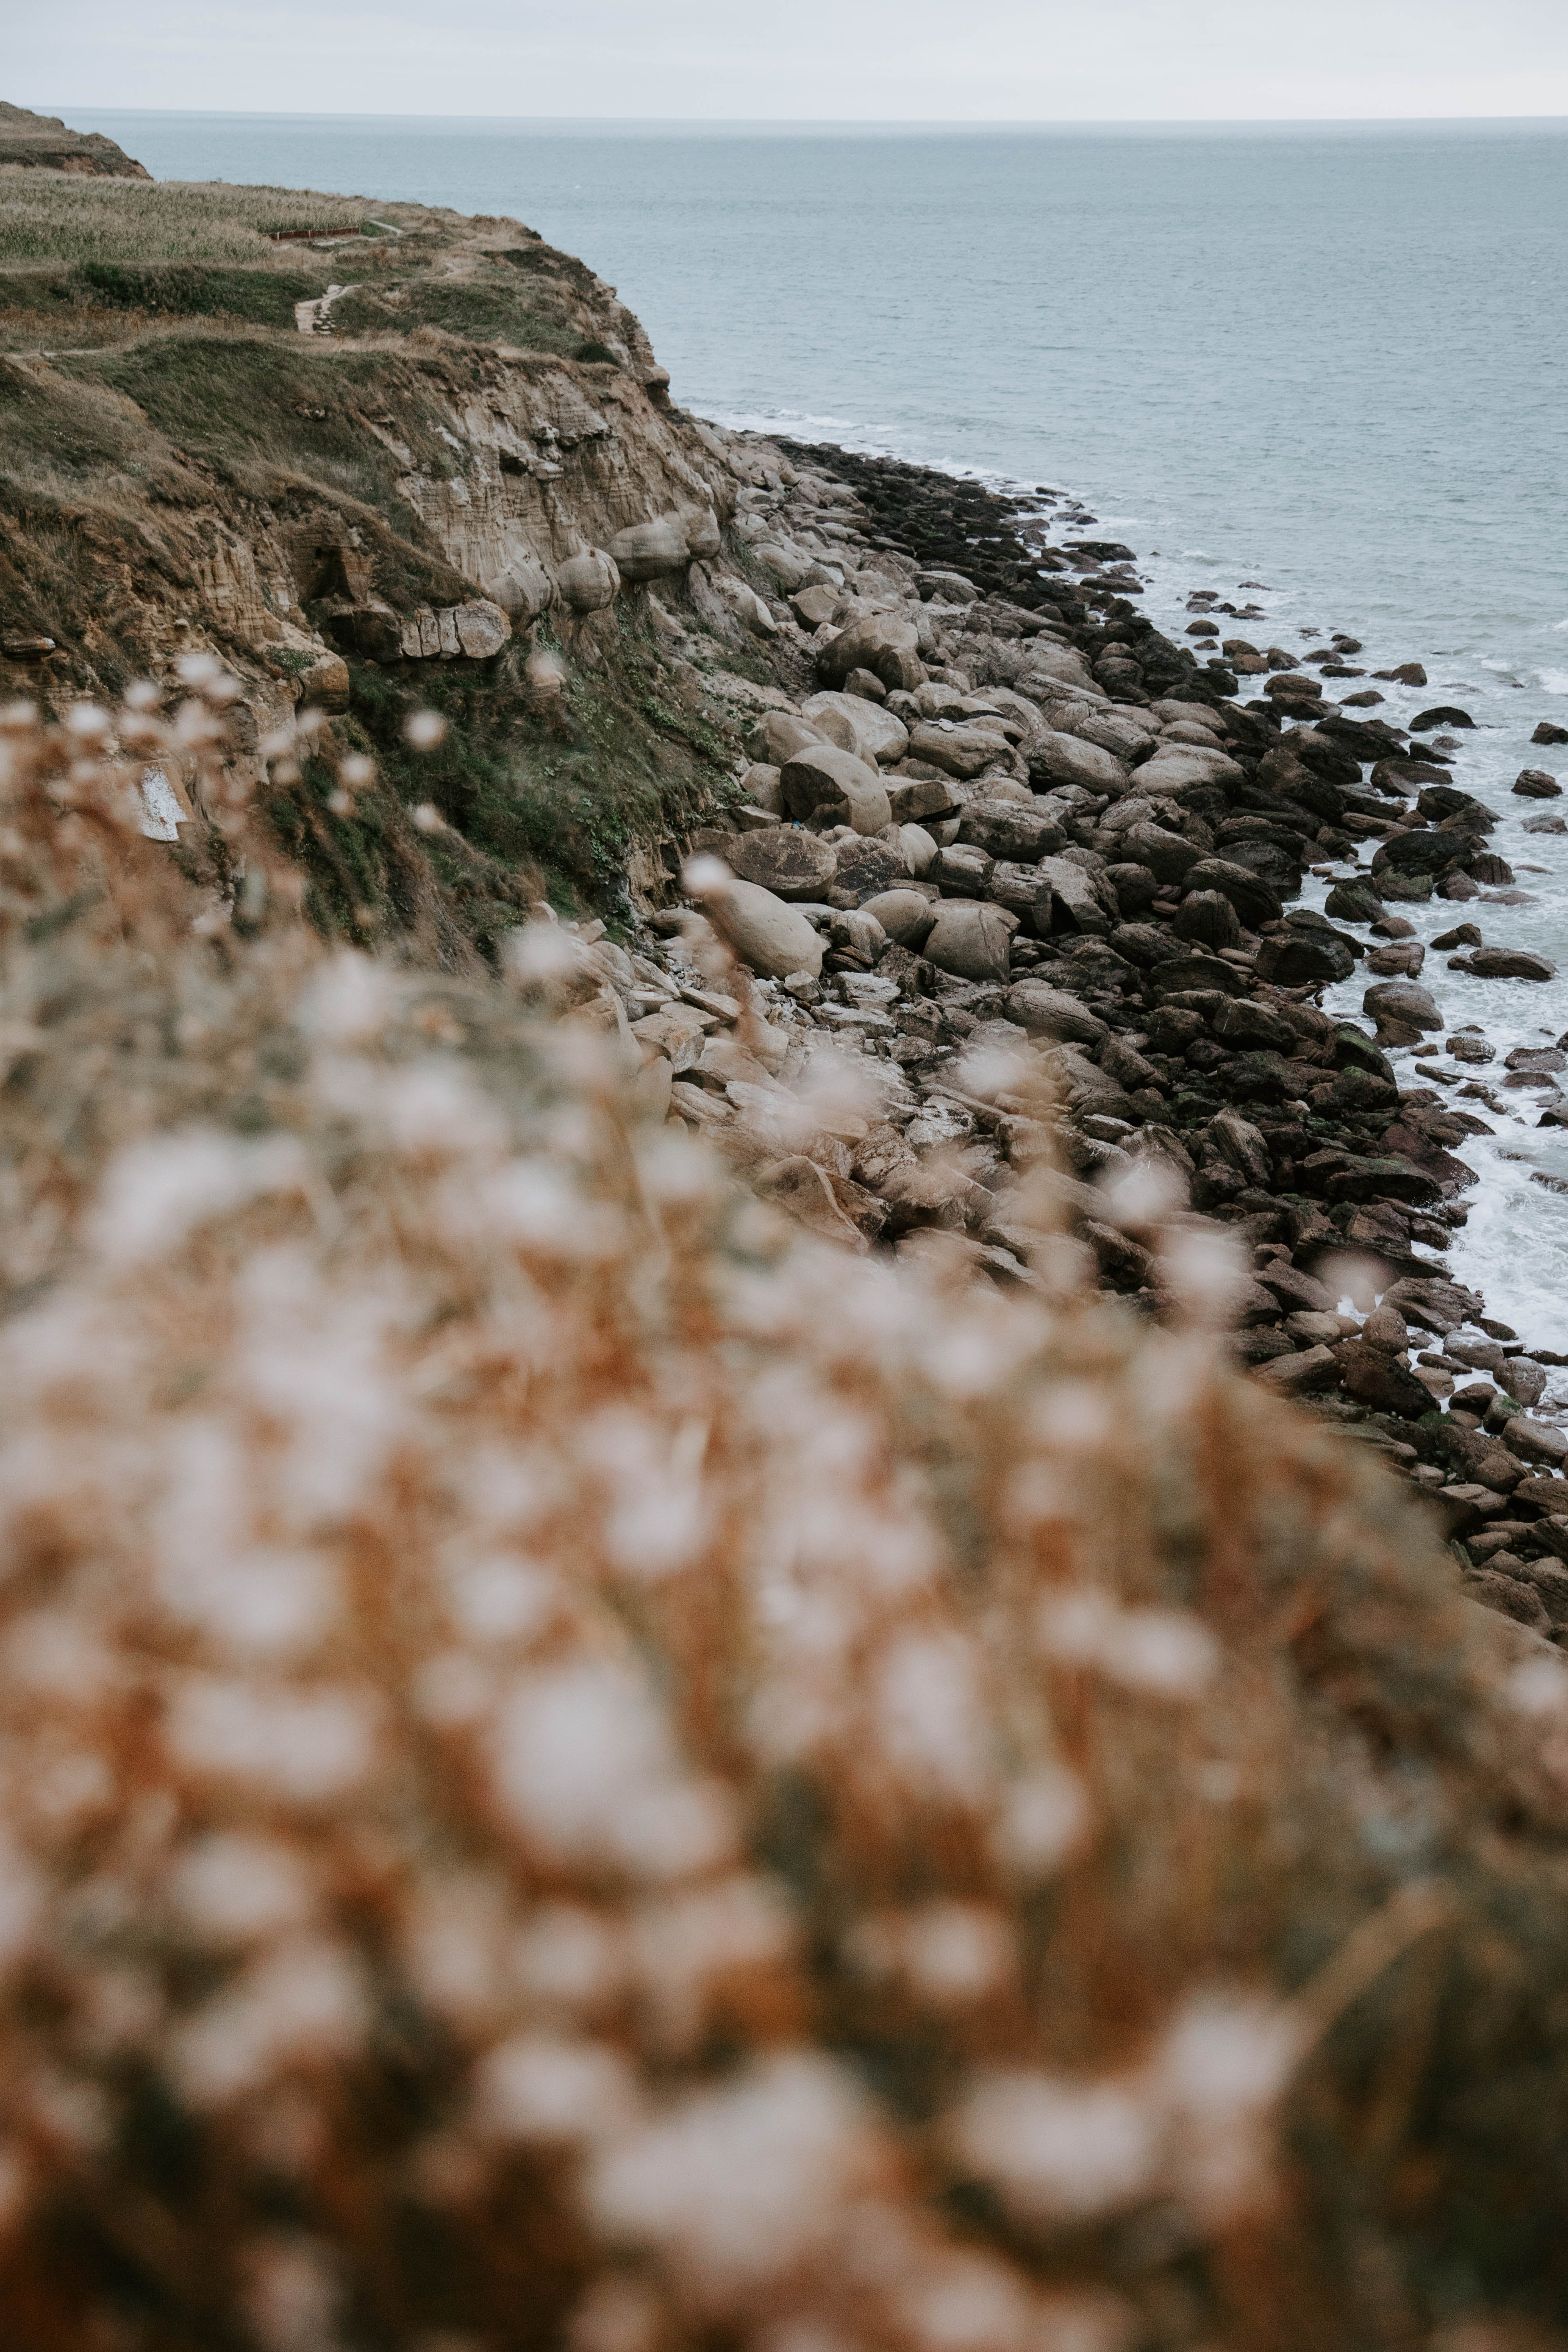 Selective Focus Photography of Seashore With Stones Near Sea